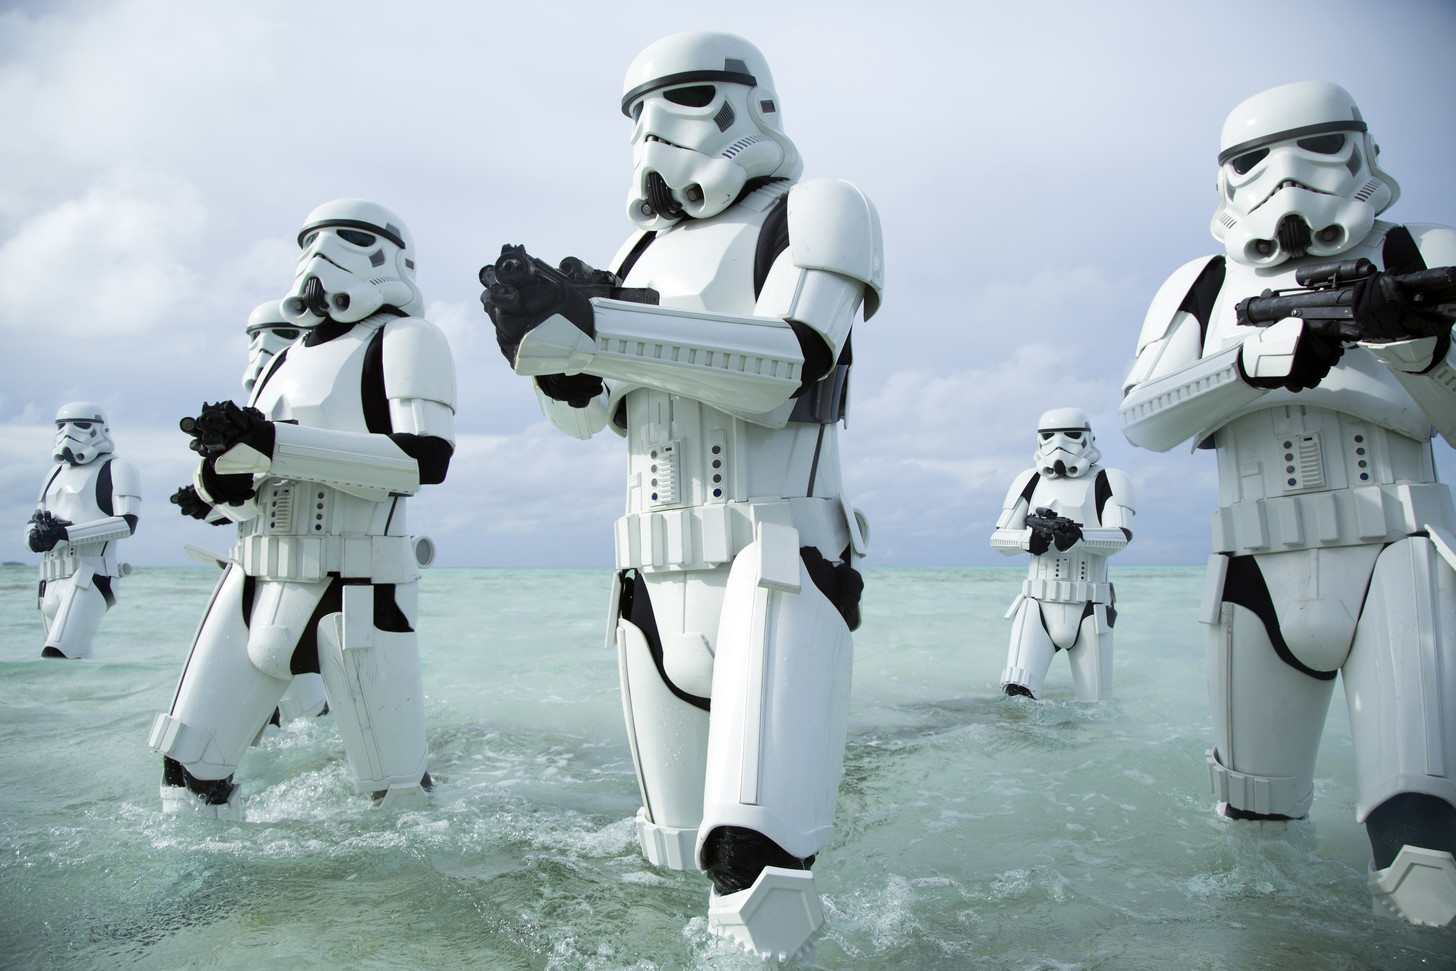 Star Wars Rogue One Stormtroopers water